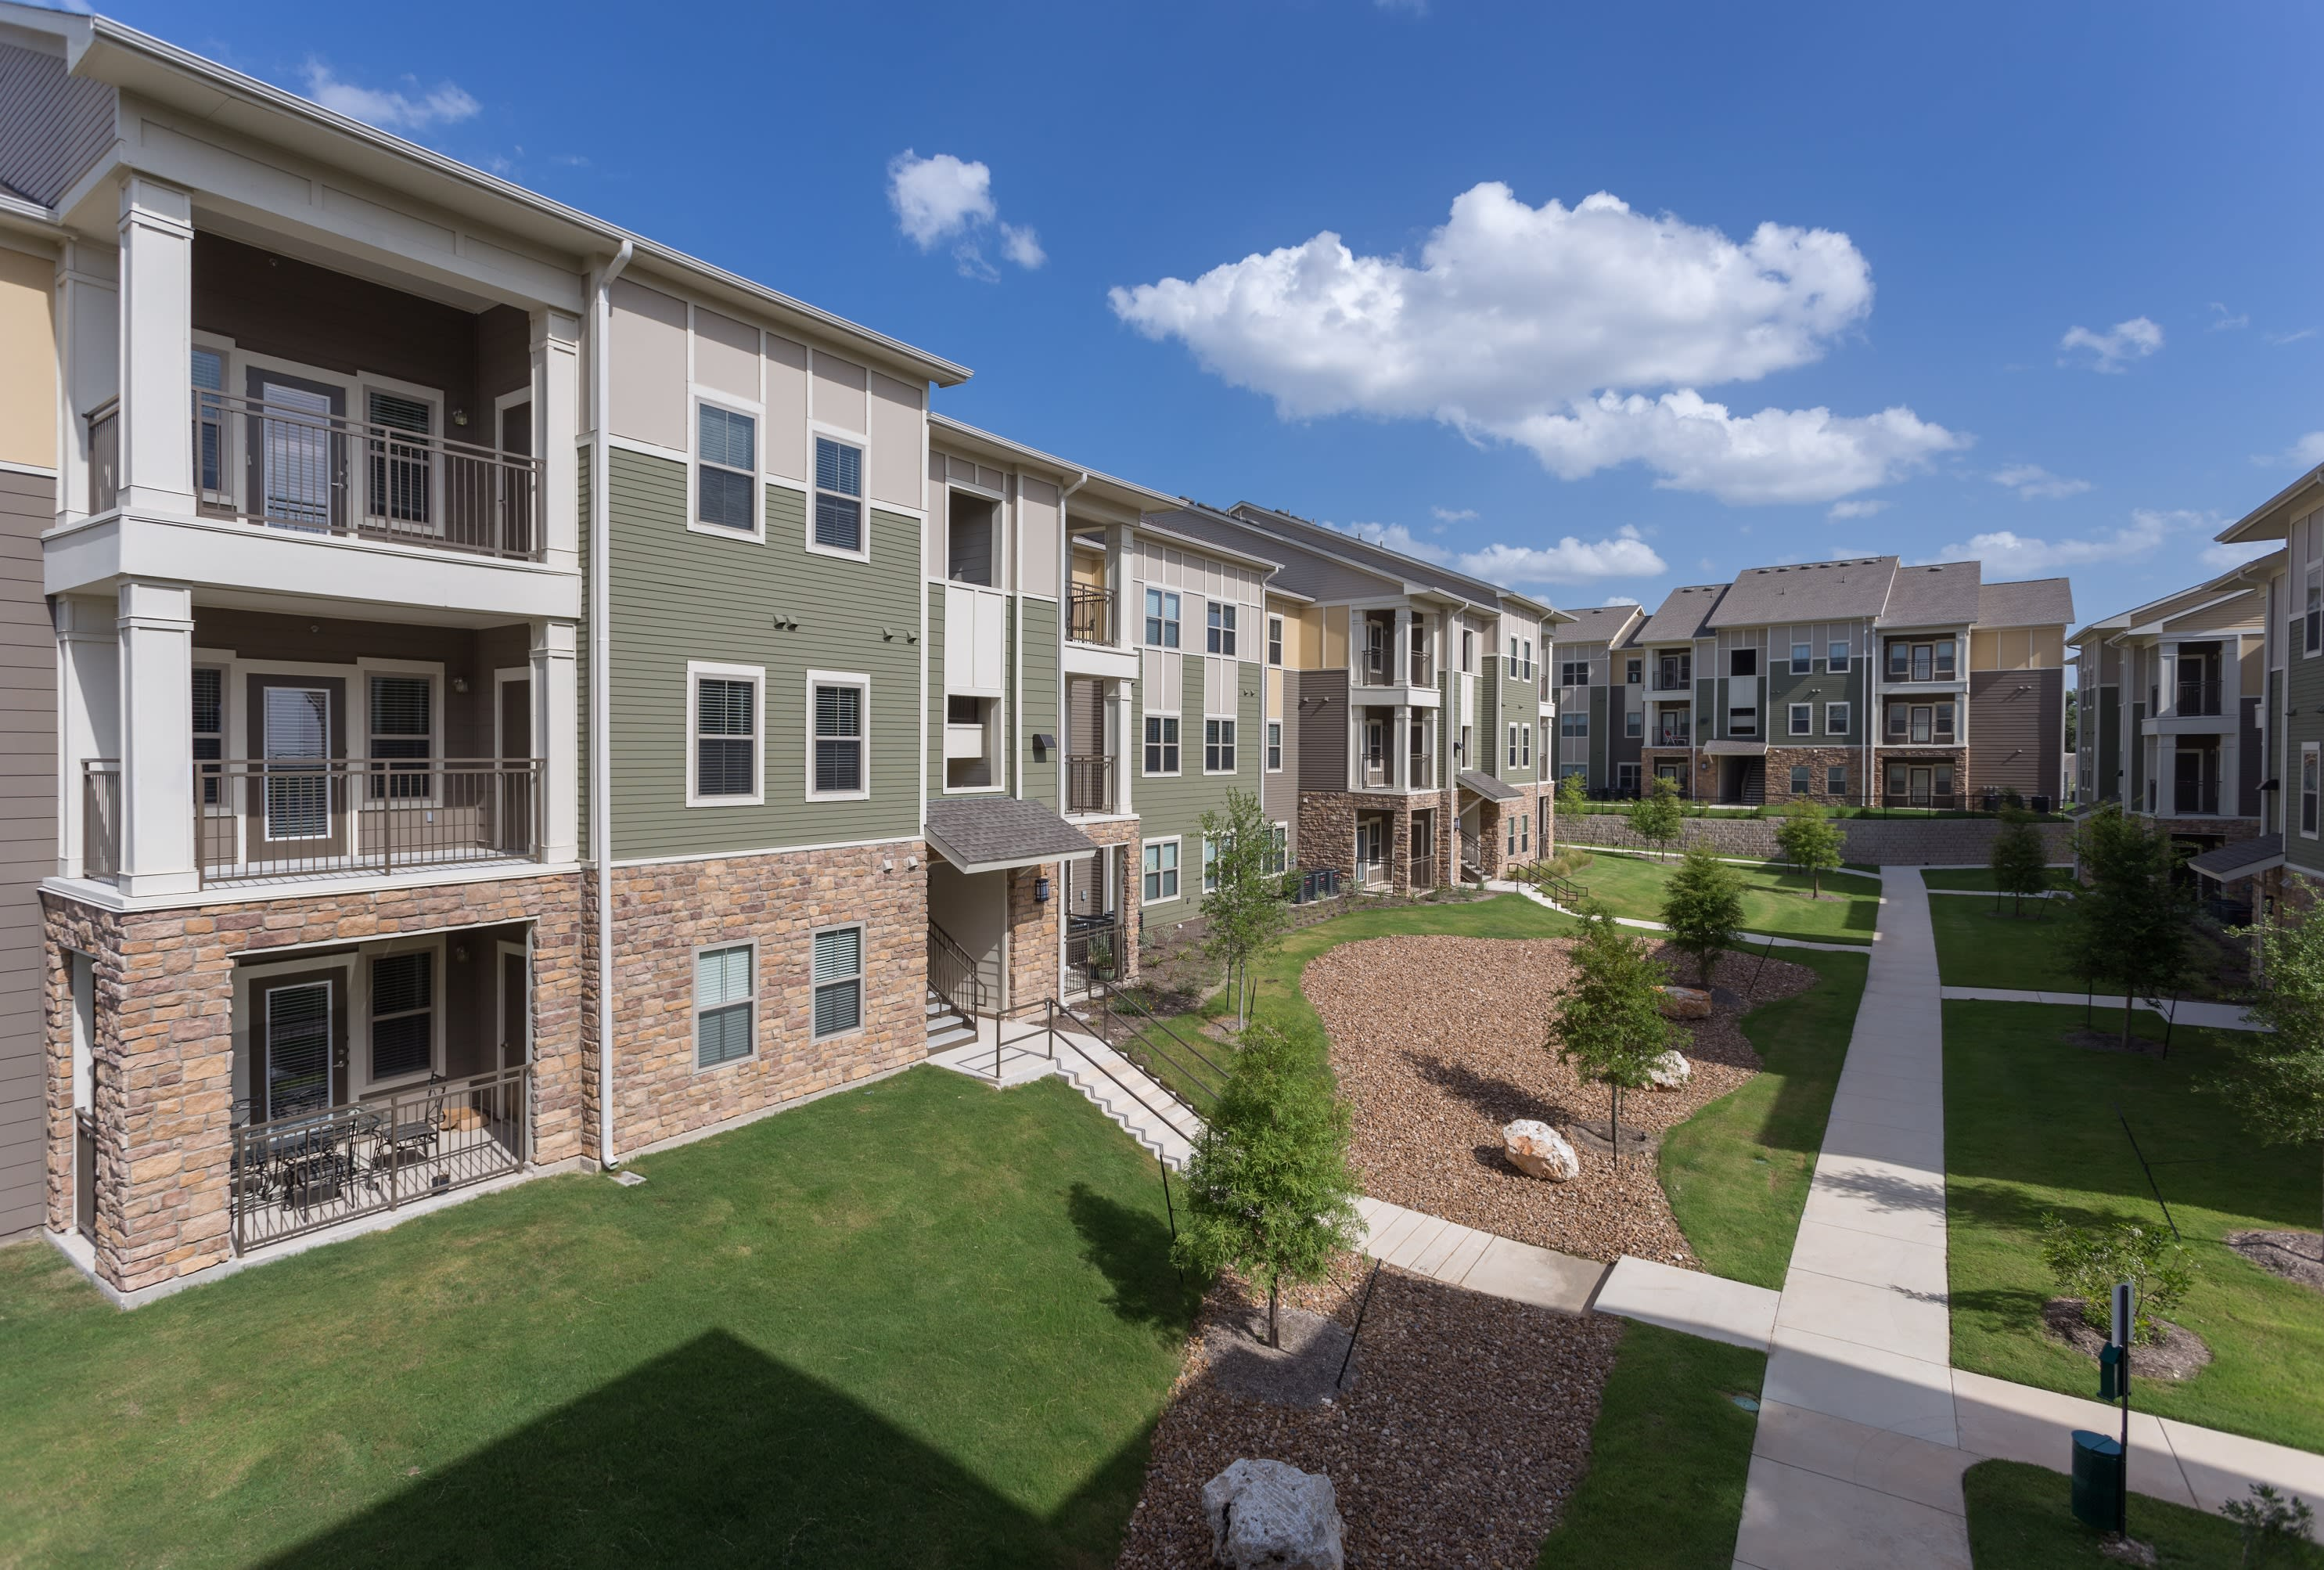 Buildings and walkways with landscaping at Encore 281 in San Antonio, Texas